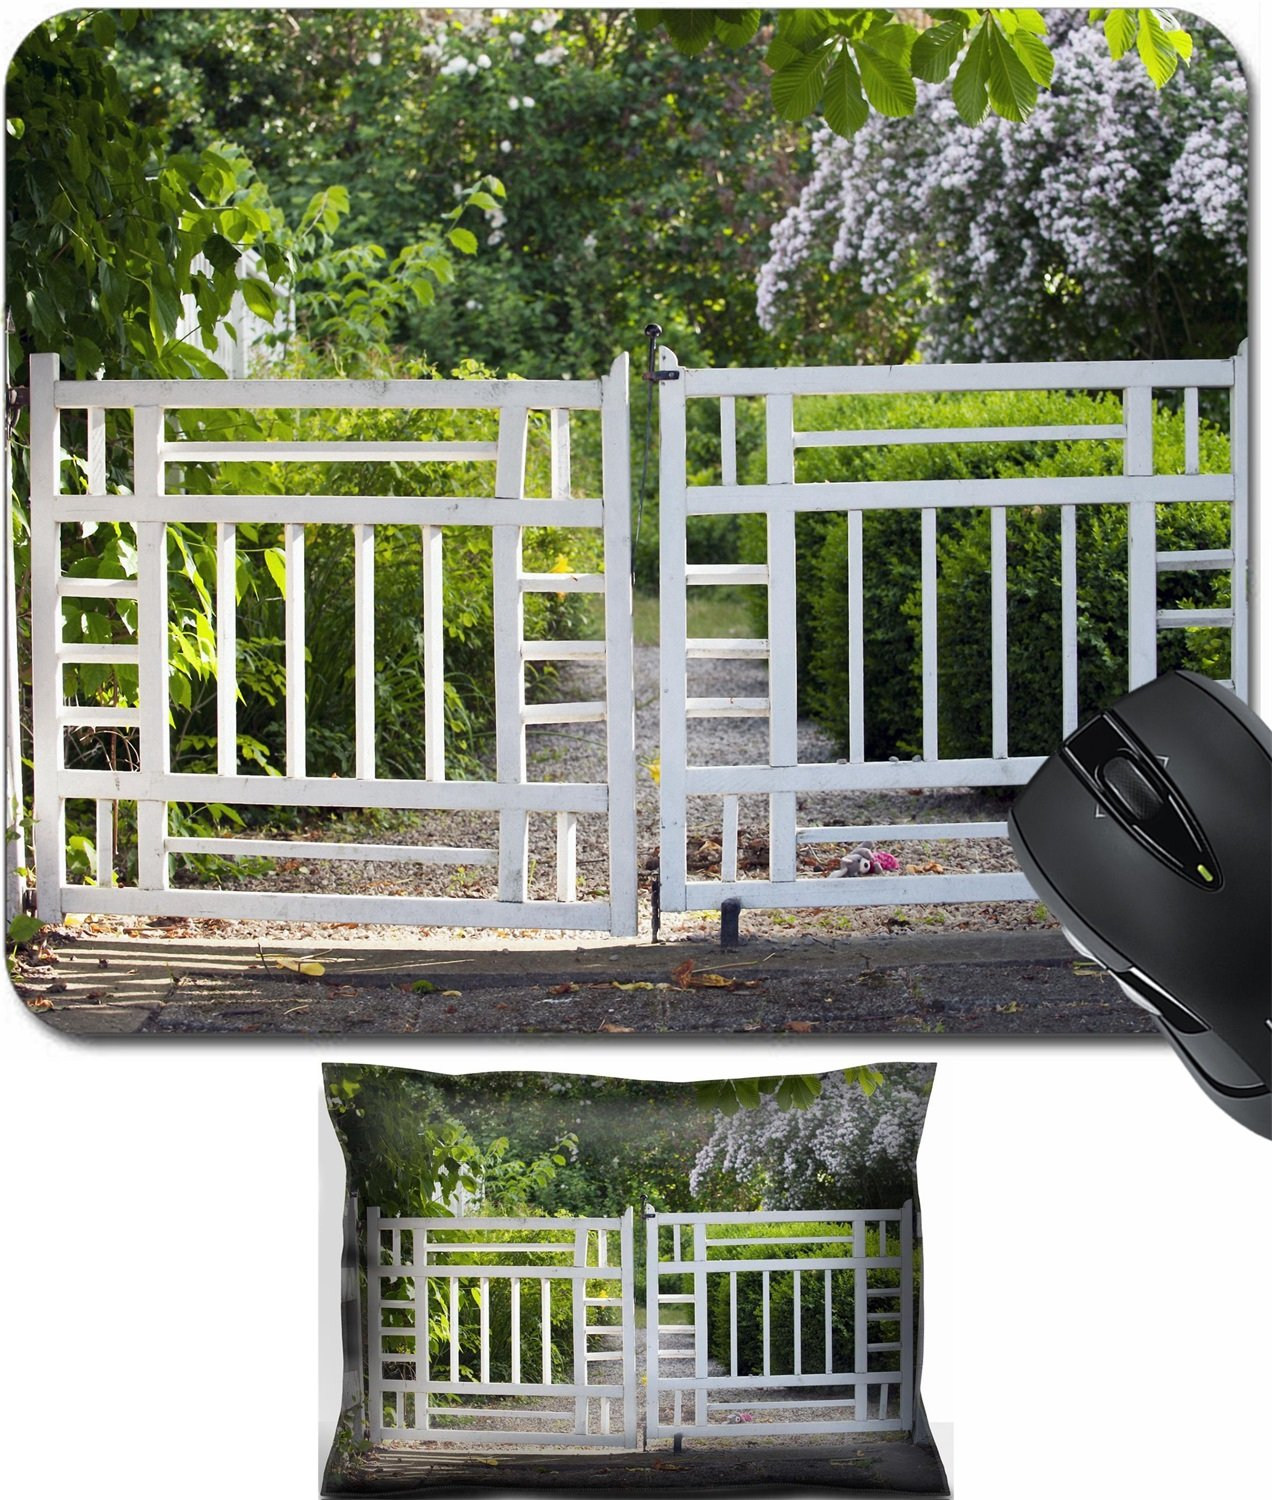 Amazon.com : MSD Mouse Wrist Rest and Small Mousepad Set, 2pc Wrist Support  design 22806478 Old vintage gates to a lush summer garden : Office Products